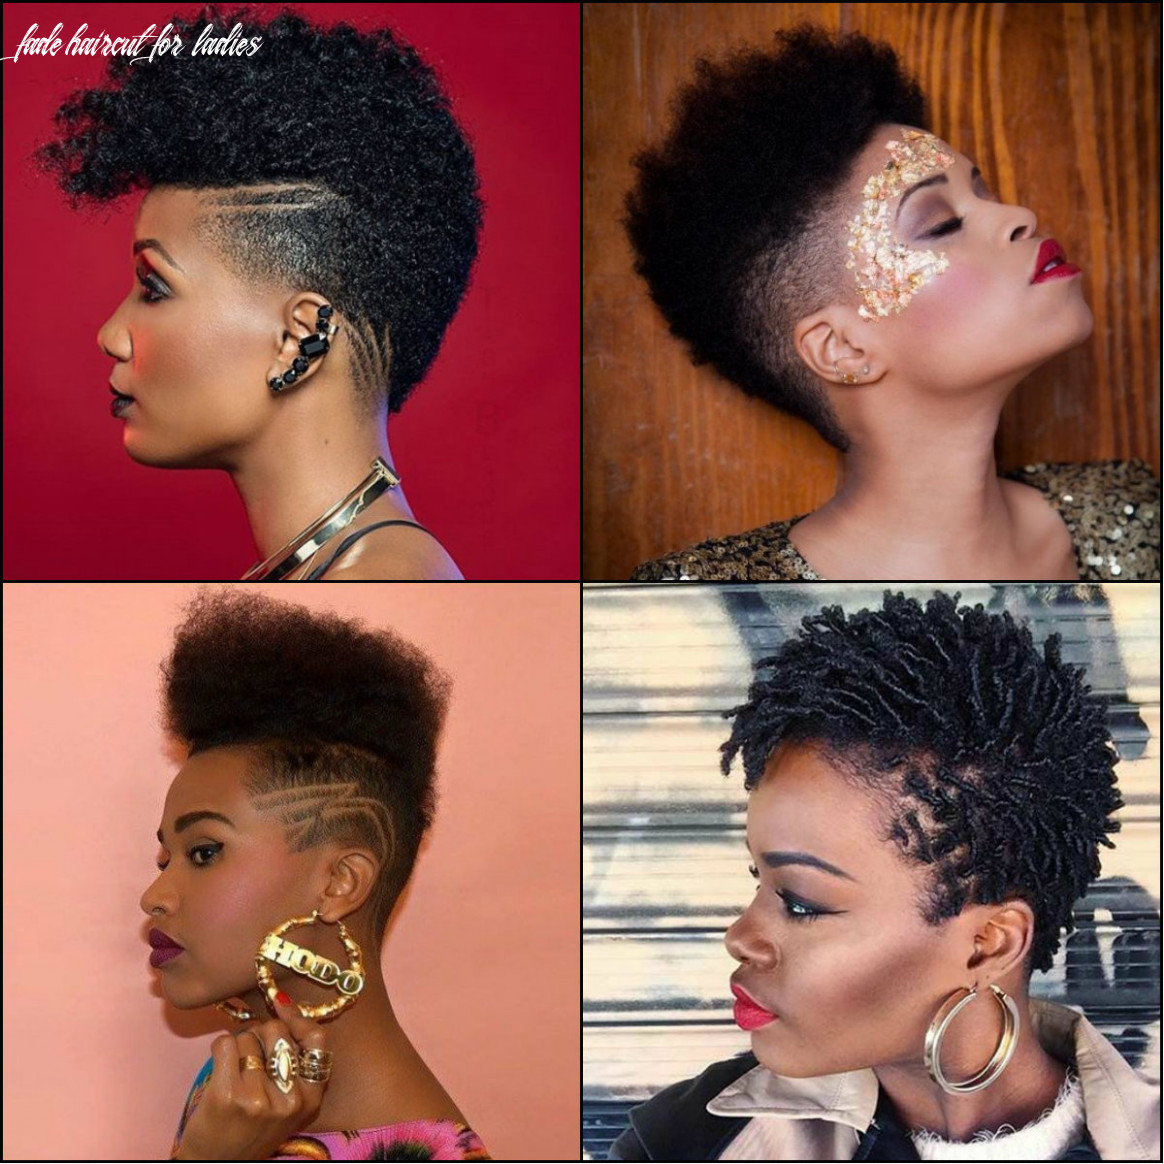 Black Women Fade Haircuts To Look Edgy and Sexy | Hairstyles 11 ...